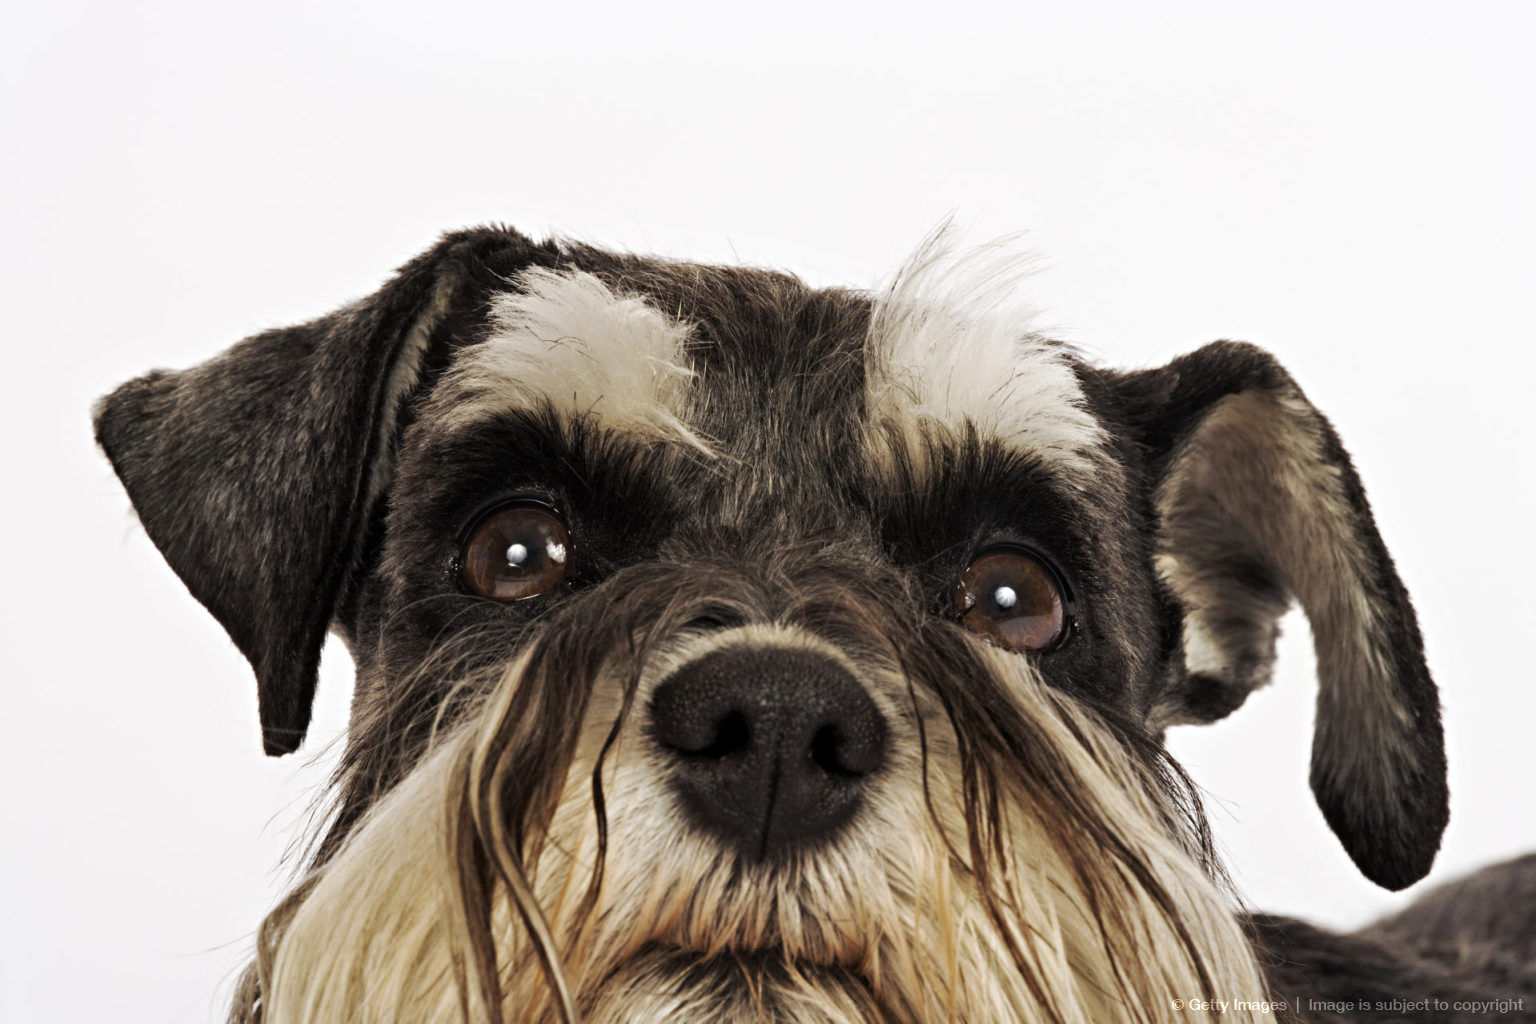 Miniature Schnauzer. Close-up of face. German breed of dog, which name derived from the German word for muzzle. Studio shot against white background. Owned...